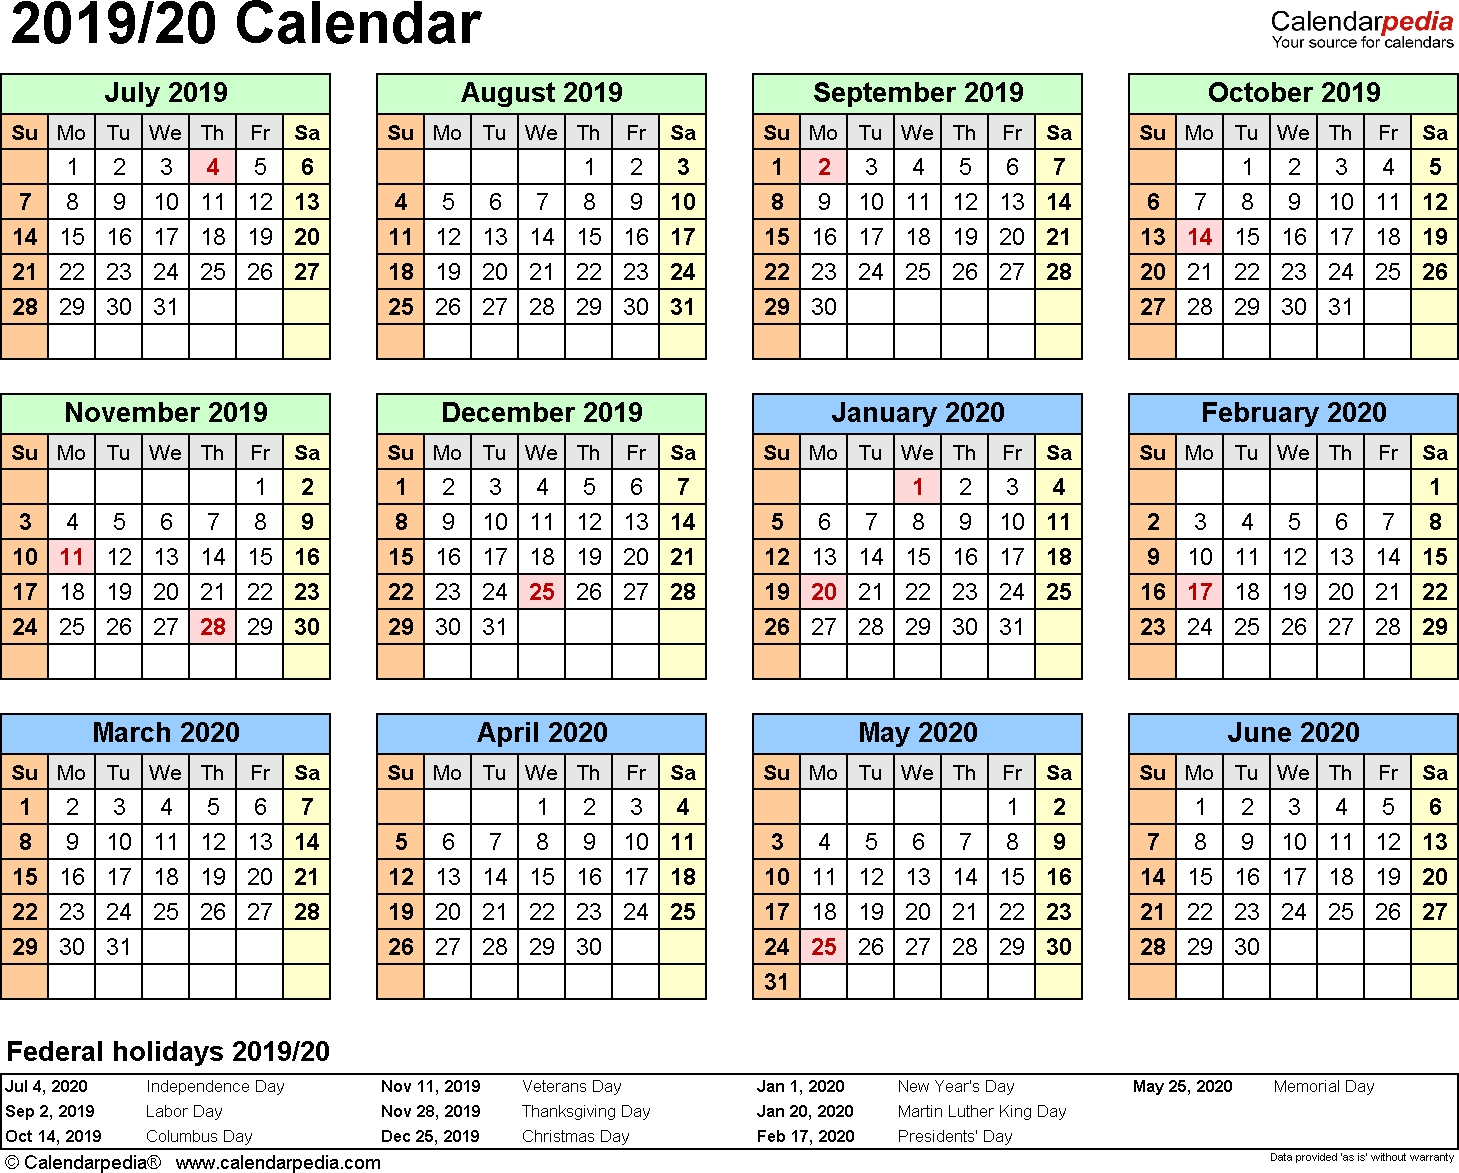 Split Year Calendar 2019/20 (July To June) - Pdf Templates inside Calender Of Special Days 2020